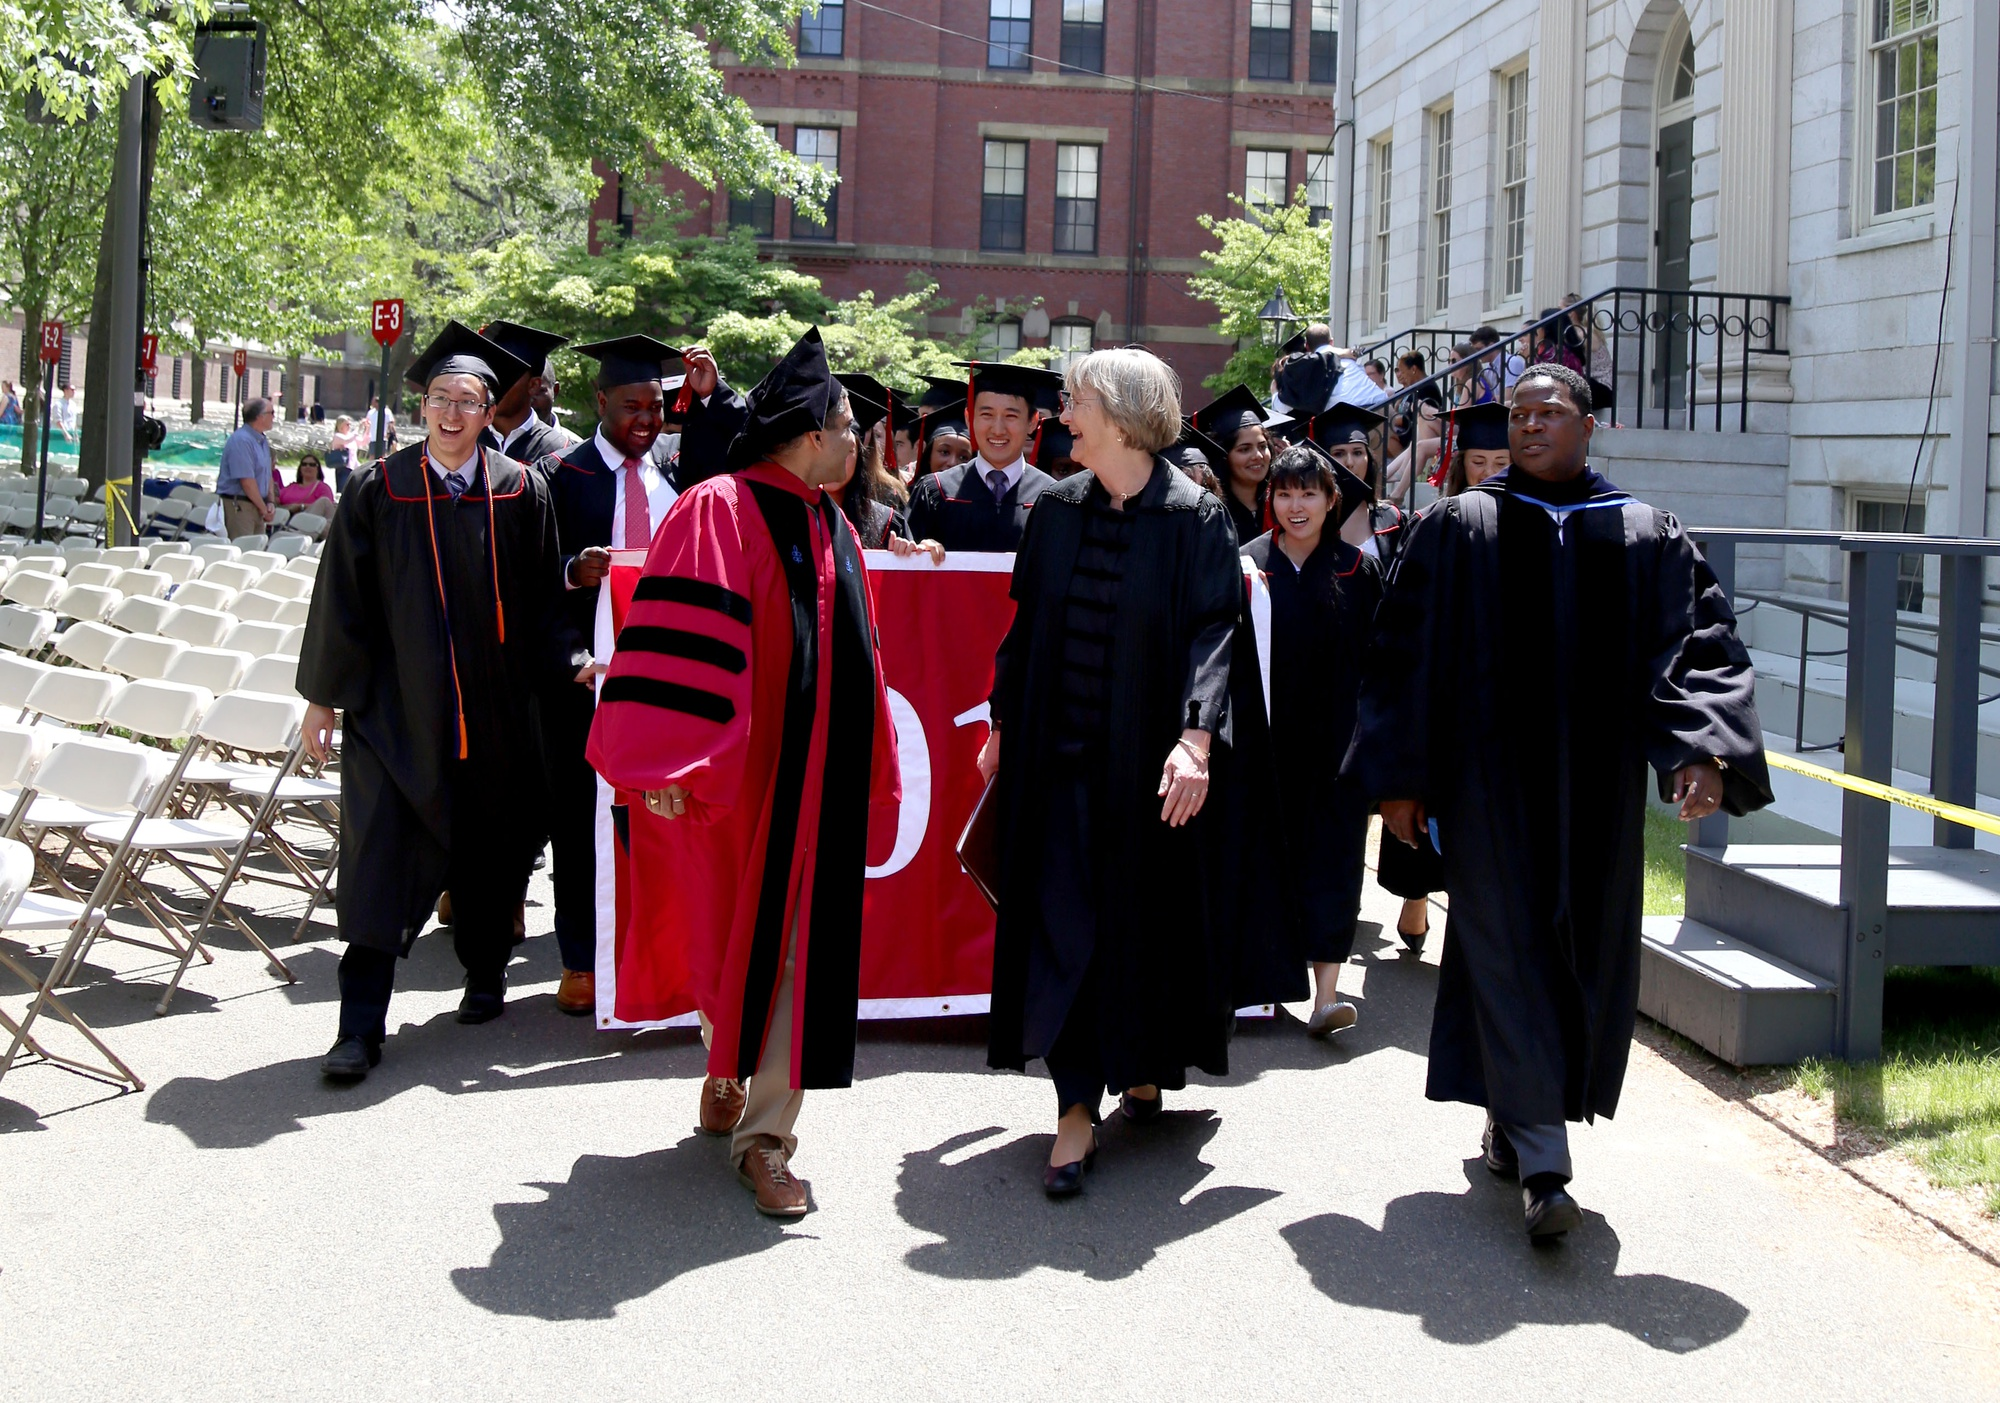 Dean of the College Rakesh Khurana, front left, and University President Drew G. Faust, front center, smile at the 2015 senior class marshals as they lead the Class of 2015 with Reverend Jonathan L. Walton, front right, to Memorial Church for the 2015 Baccalaureate Service on May 26.